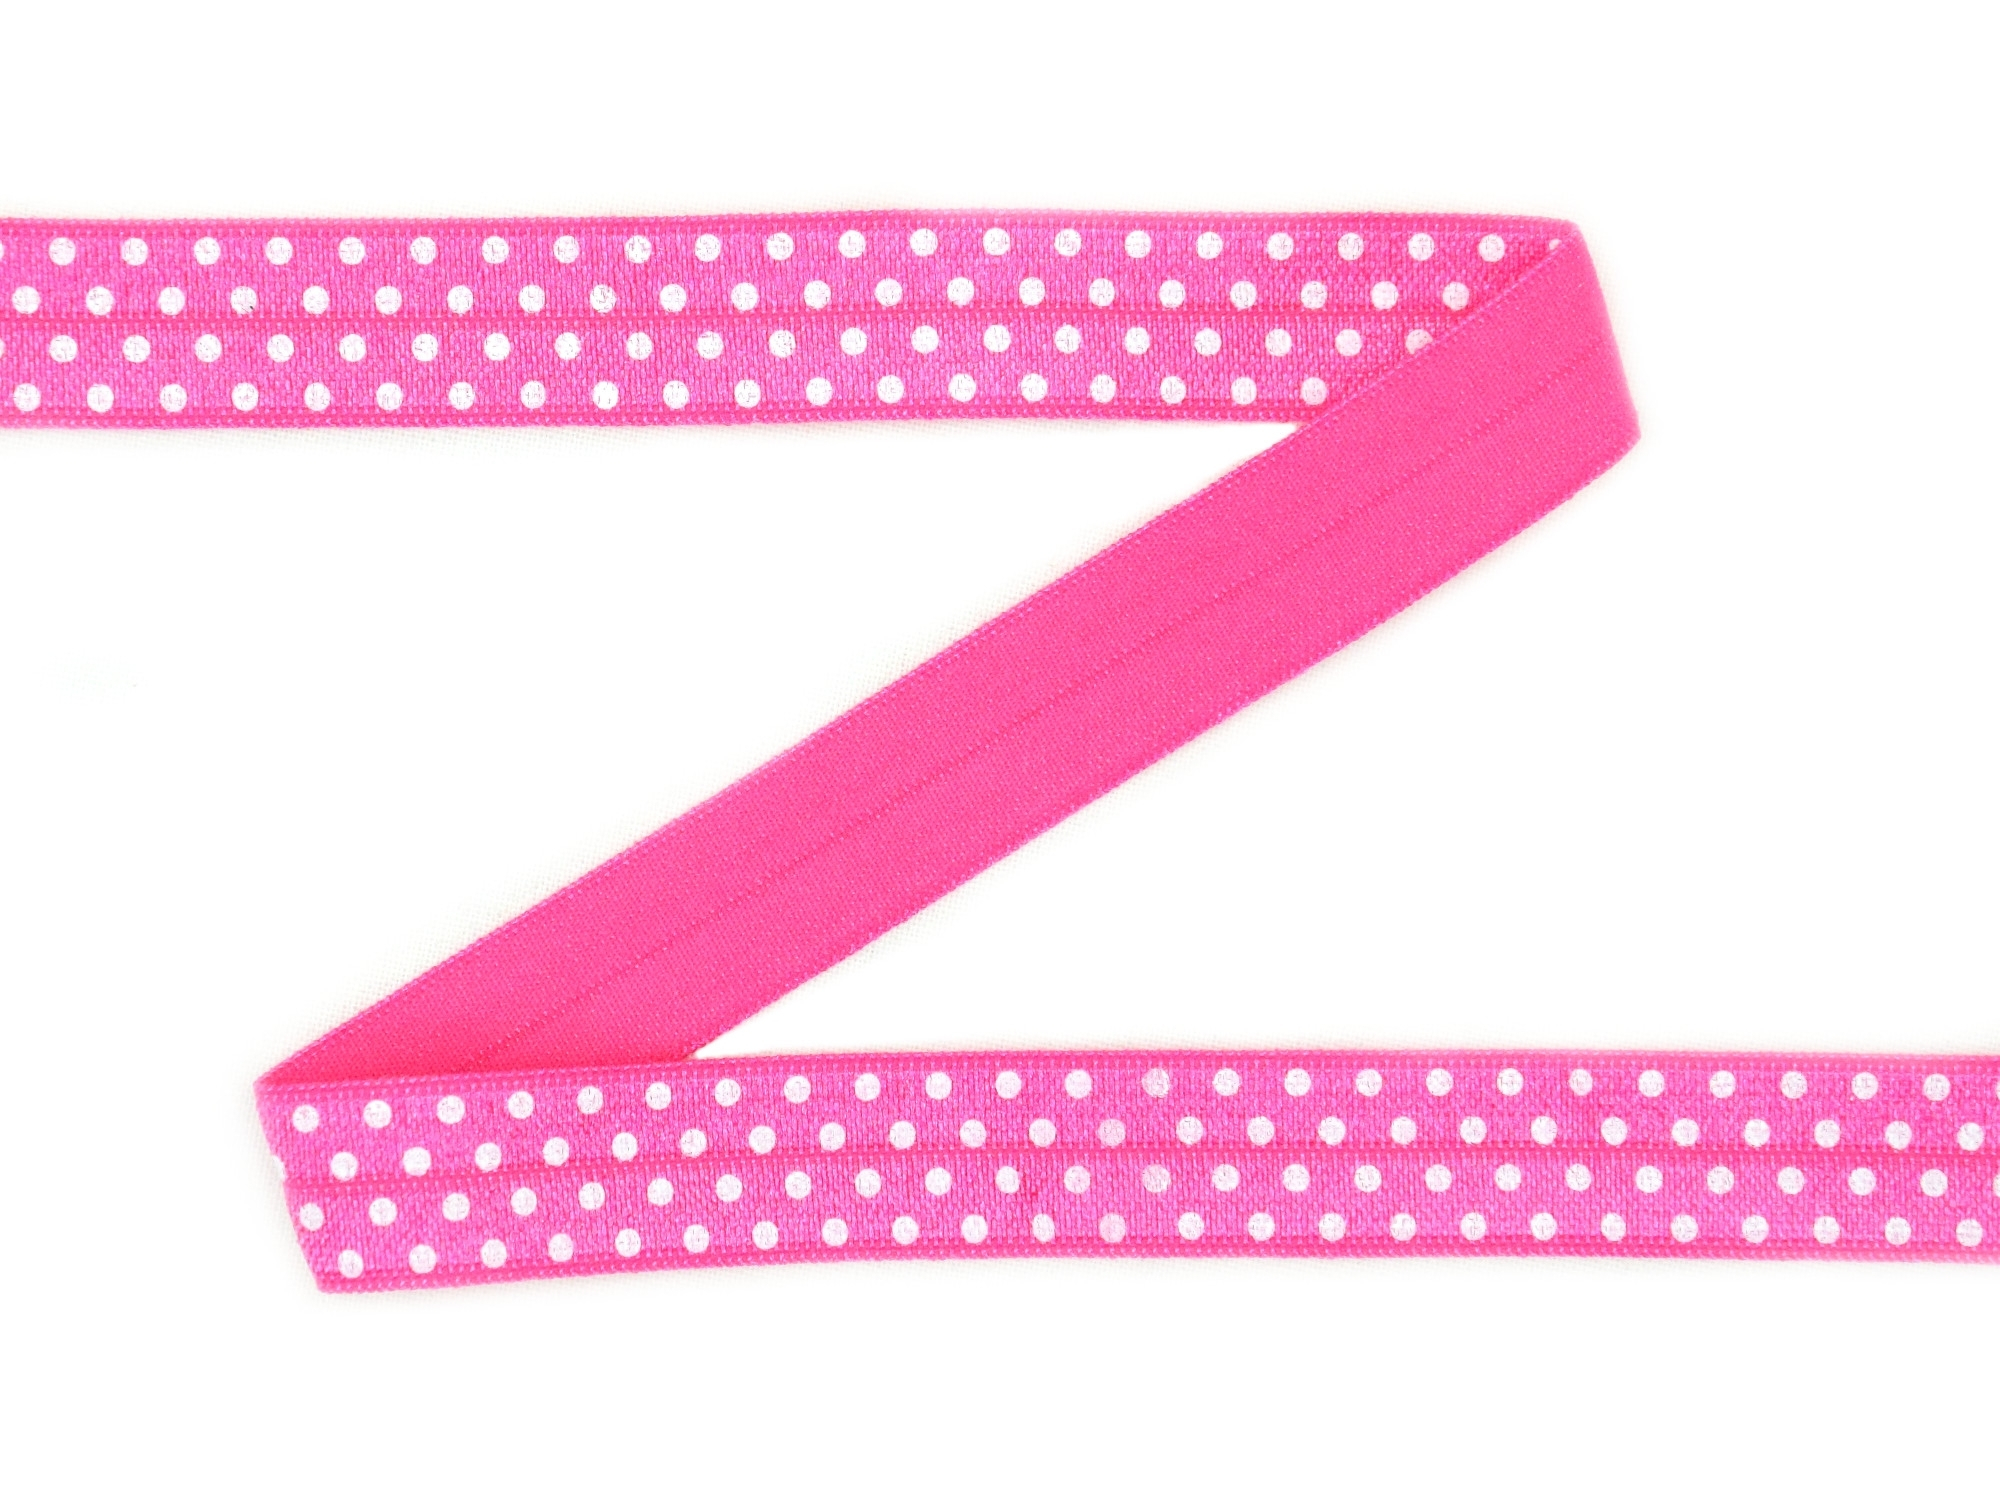 Elastic Binding Ribbon with dots, pink 15 mm